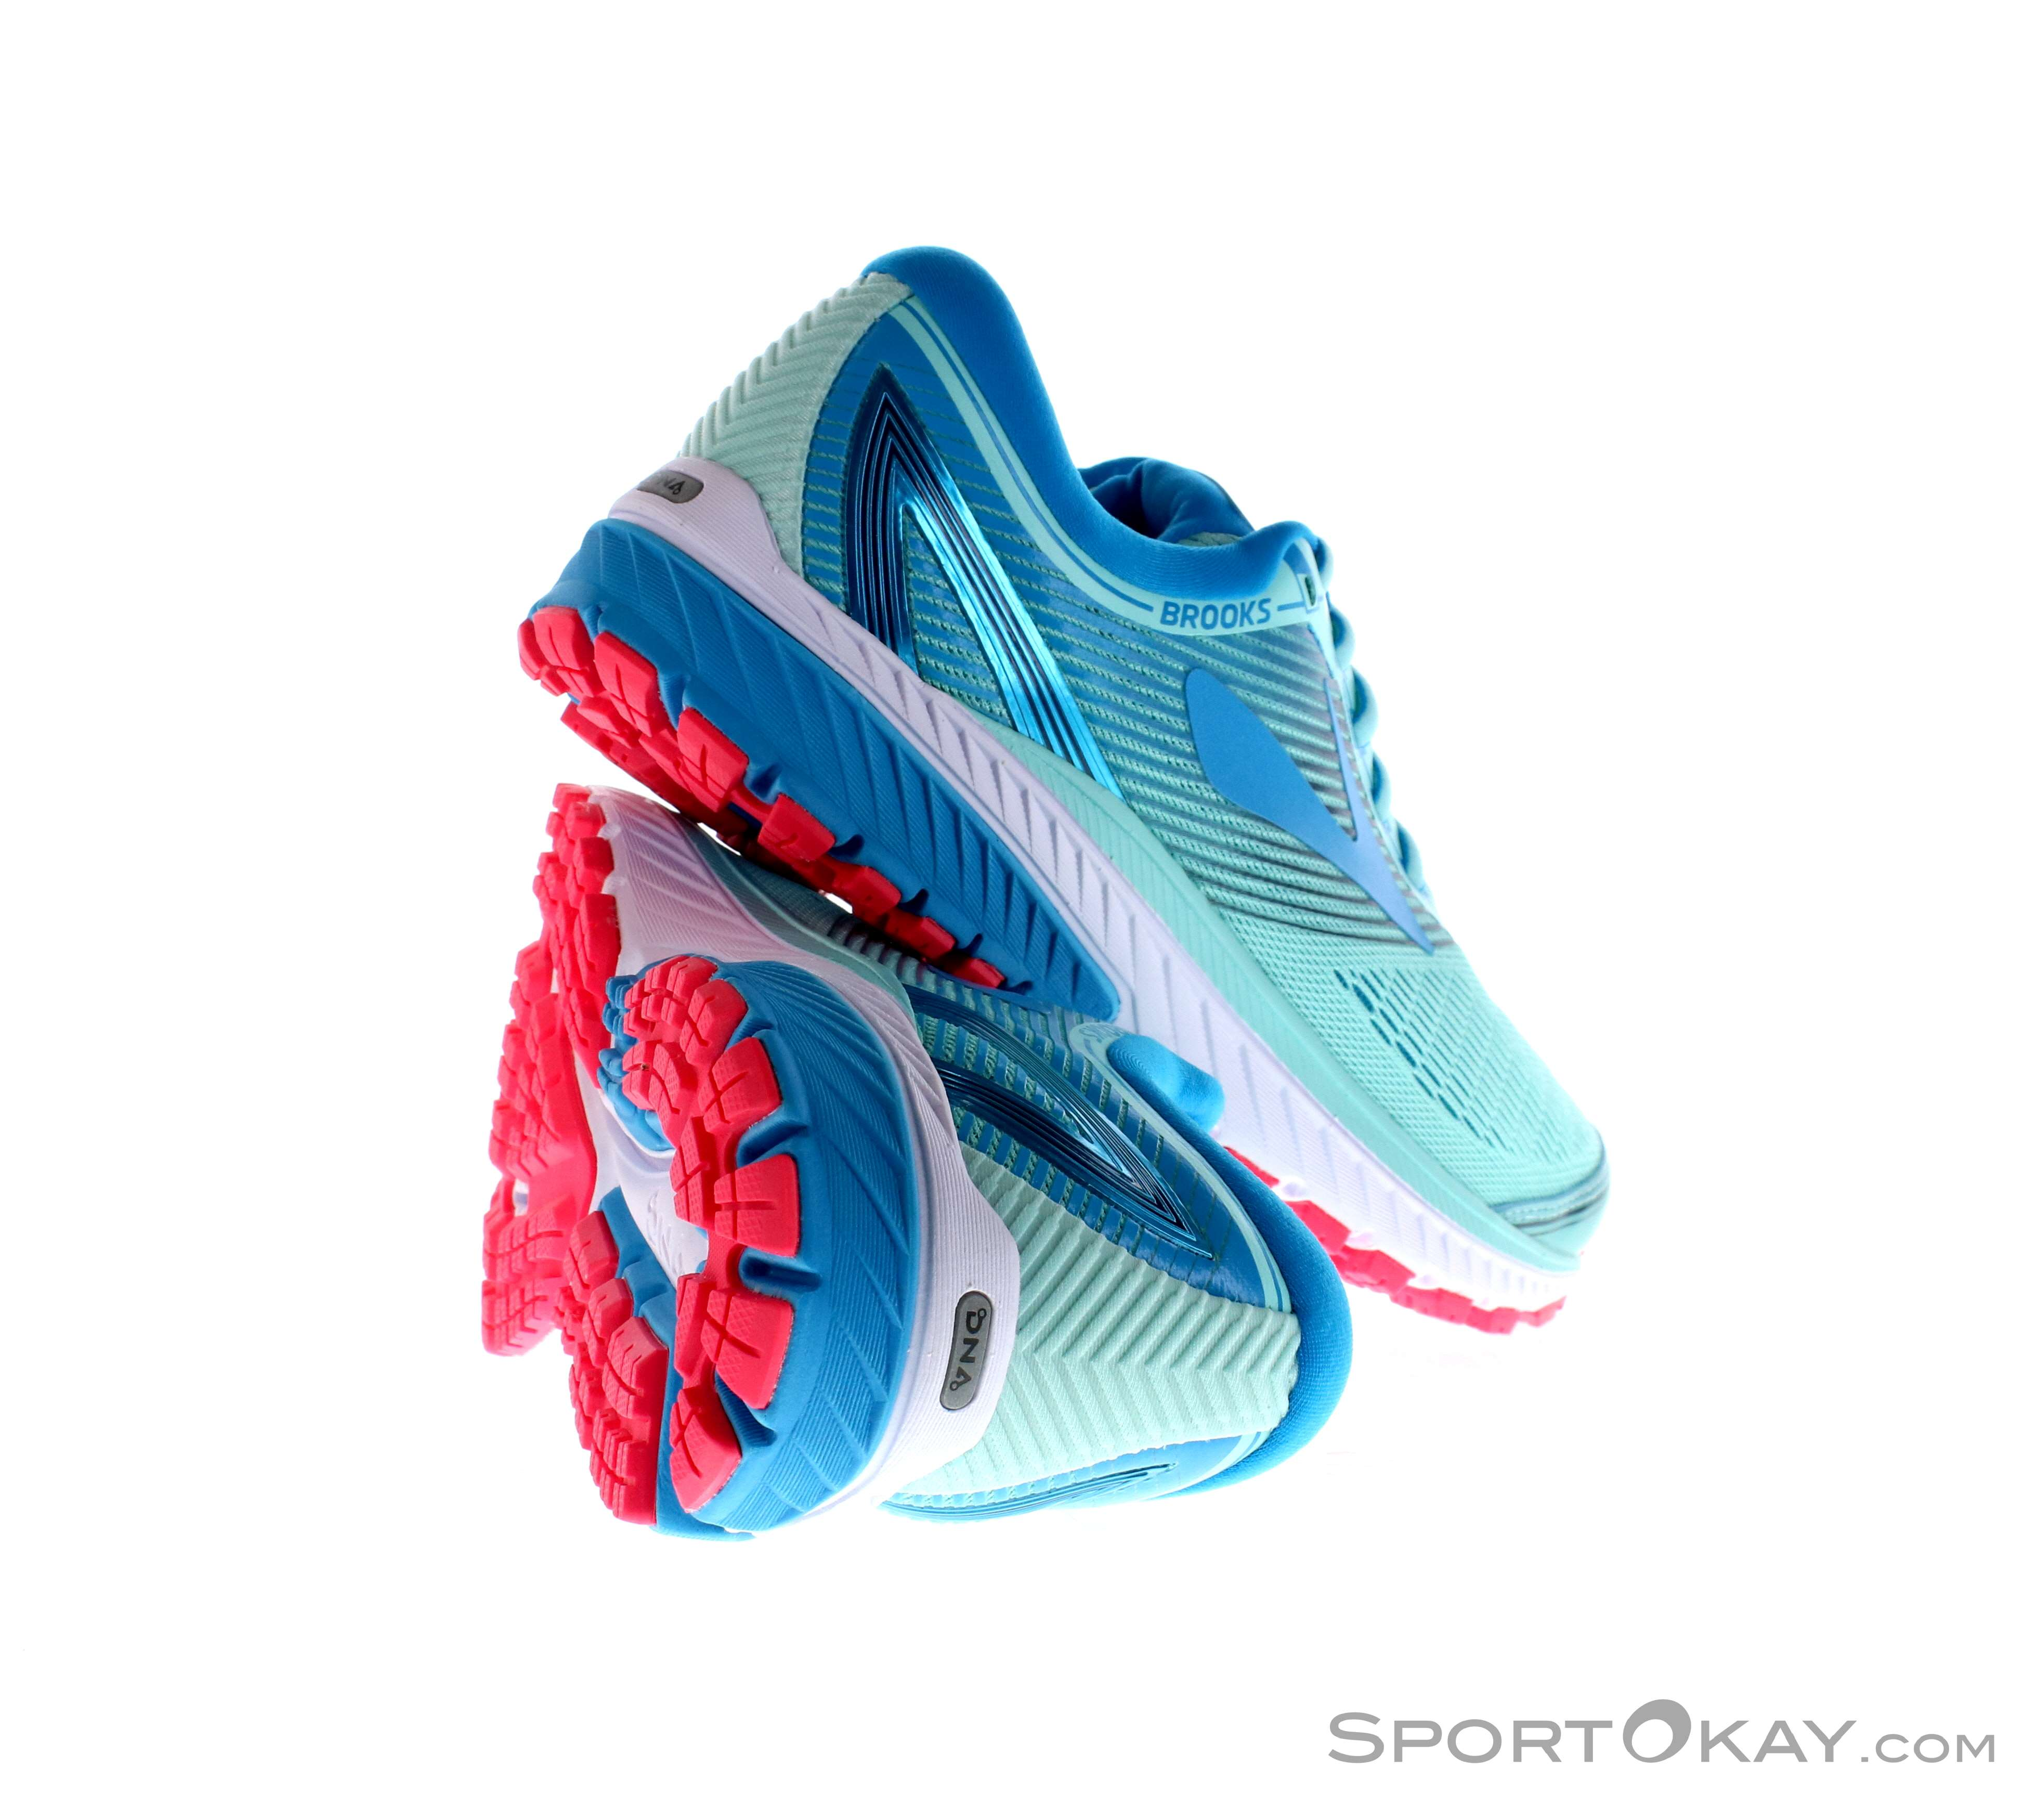 5937247f0afee Brooks Ghost 10 Womens Running Shoes - Running Shoes - Running Shoes ...